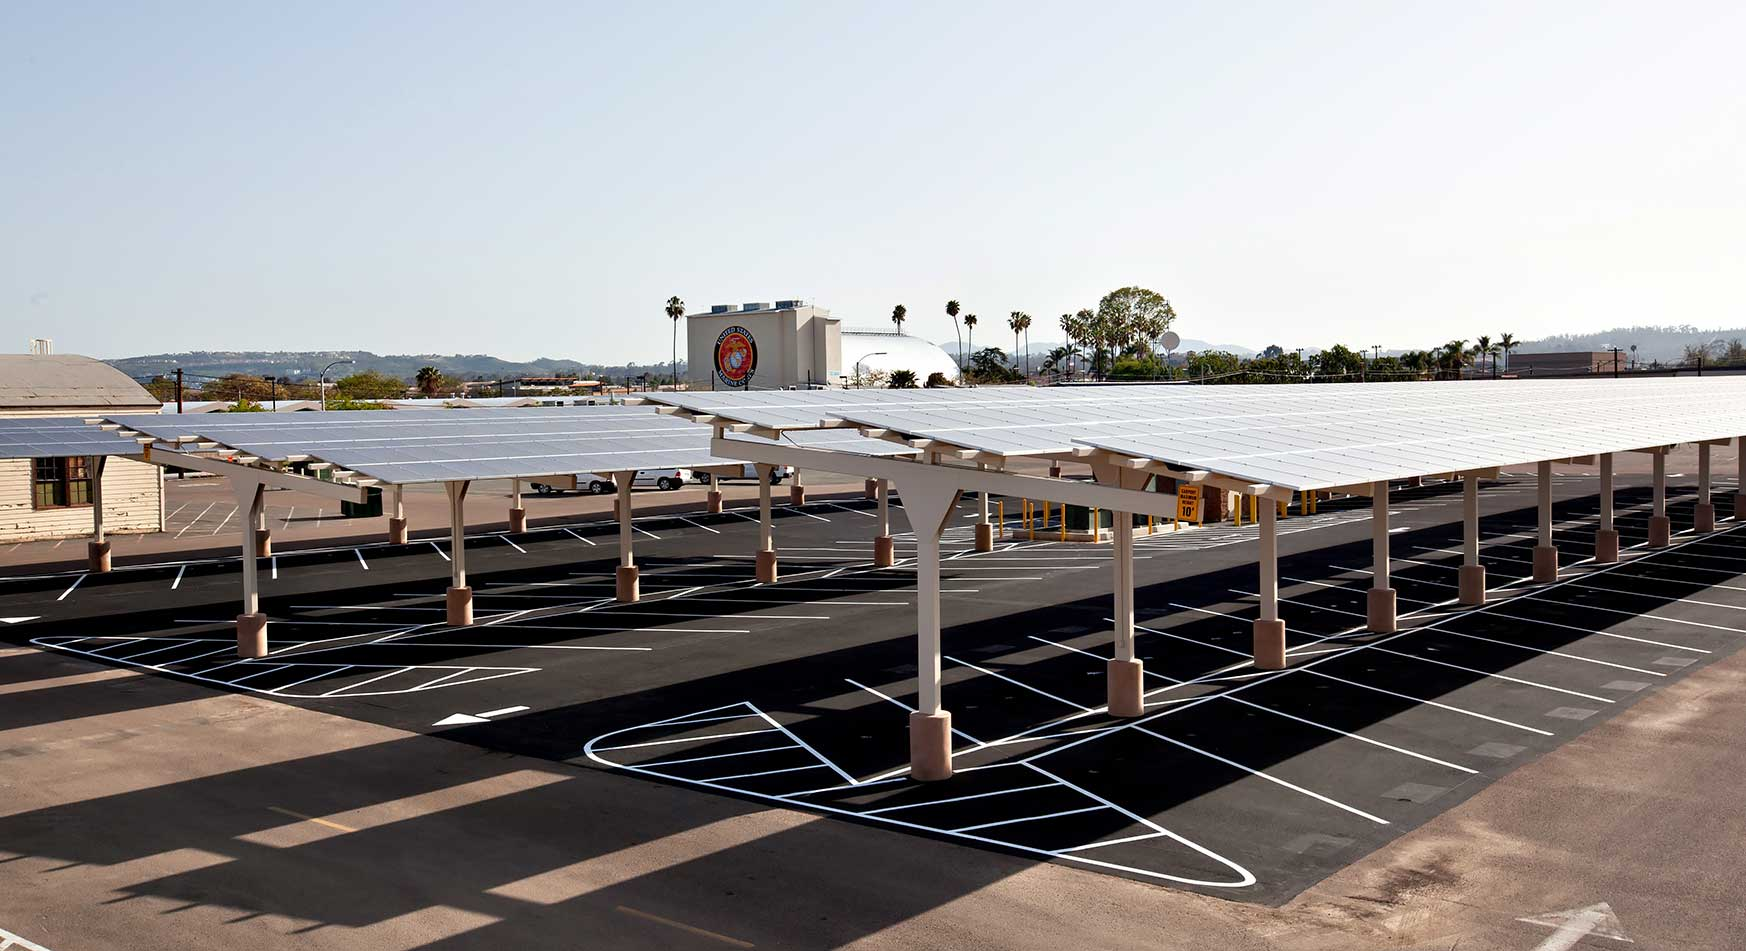 Raised solar panels shade a parking lot